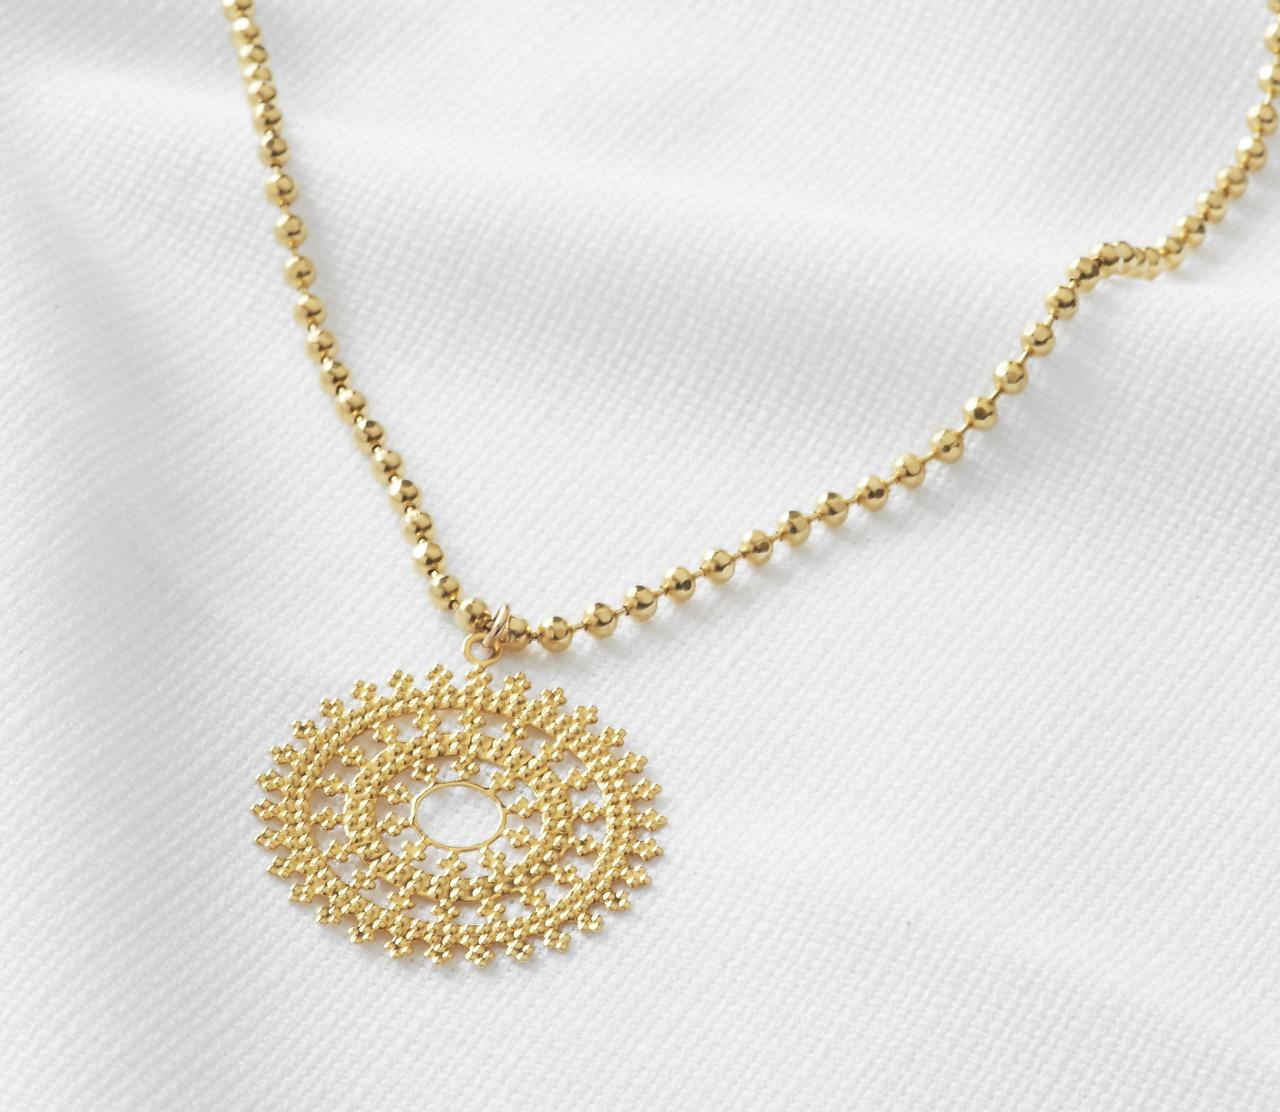 Gold pendant necklace long necklace round necklace gold disc gold pendant necklace long necklace round necklace gold disc necklace everyday necklace aloadofball Images